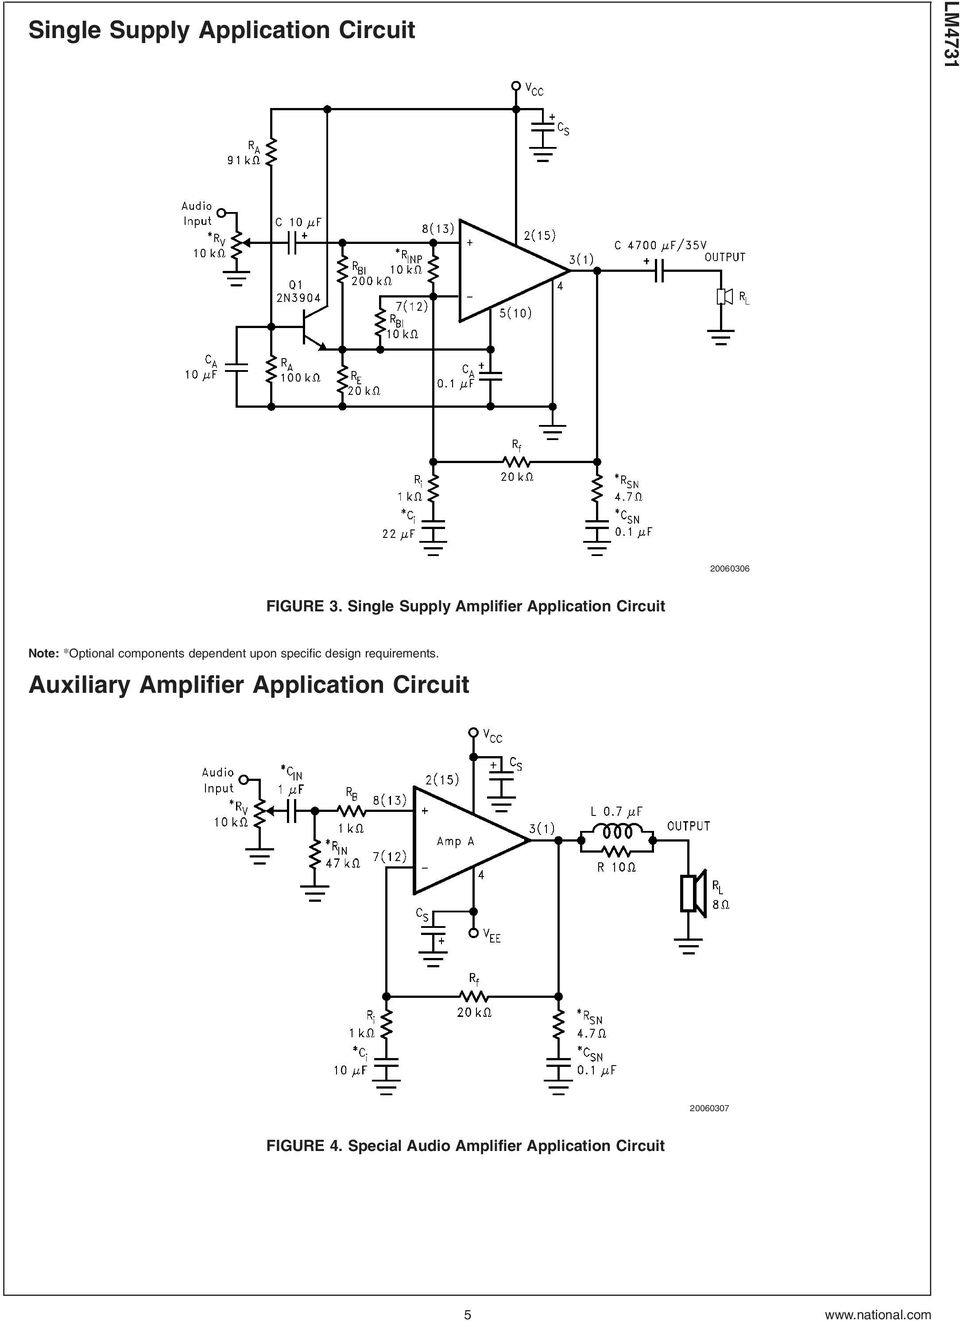 Lm4731 Stereo 25w Audio Power Amplifier With Mute And Standby Modes 20w Hifi Tda2040 Schematic Design Dependent Upon Specific Requirements